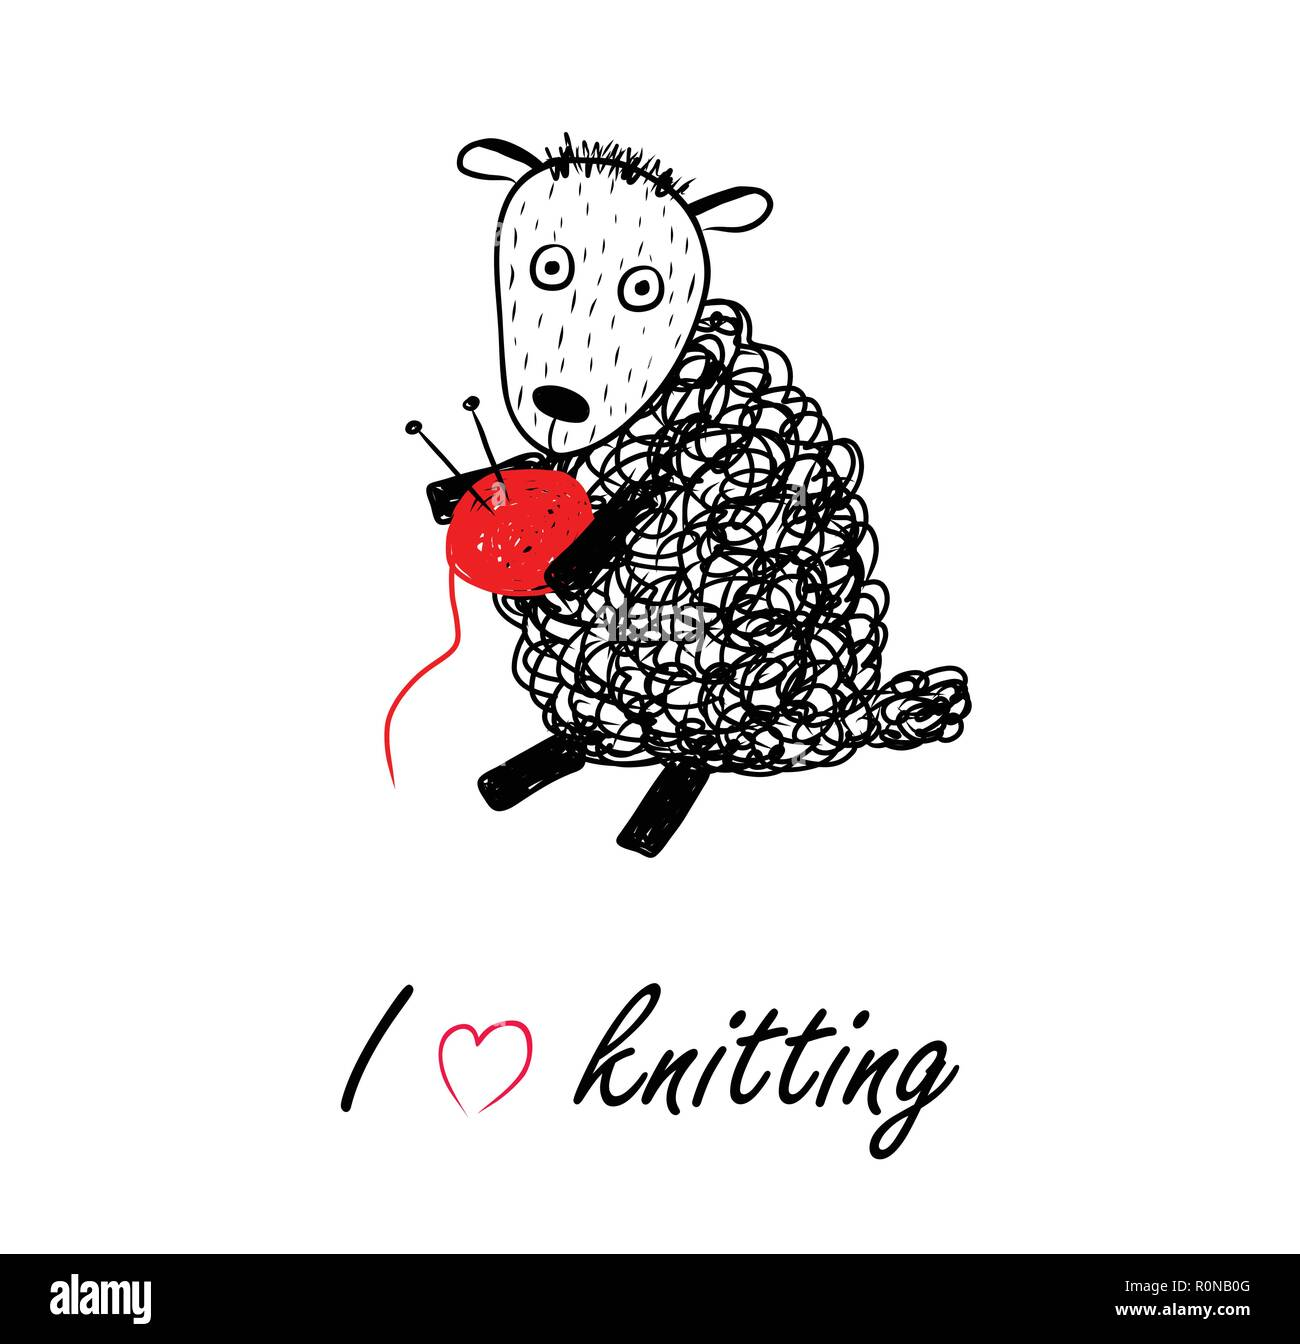 Knitting Logo With Funny Sheep And Ball Of Threads Ball Of Red Yarn With Knitting Needles Knit Icon Poster Background Postcard Lettering Vector Stock Vector Image Art Alamy